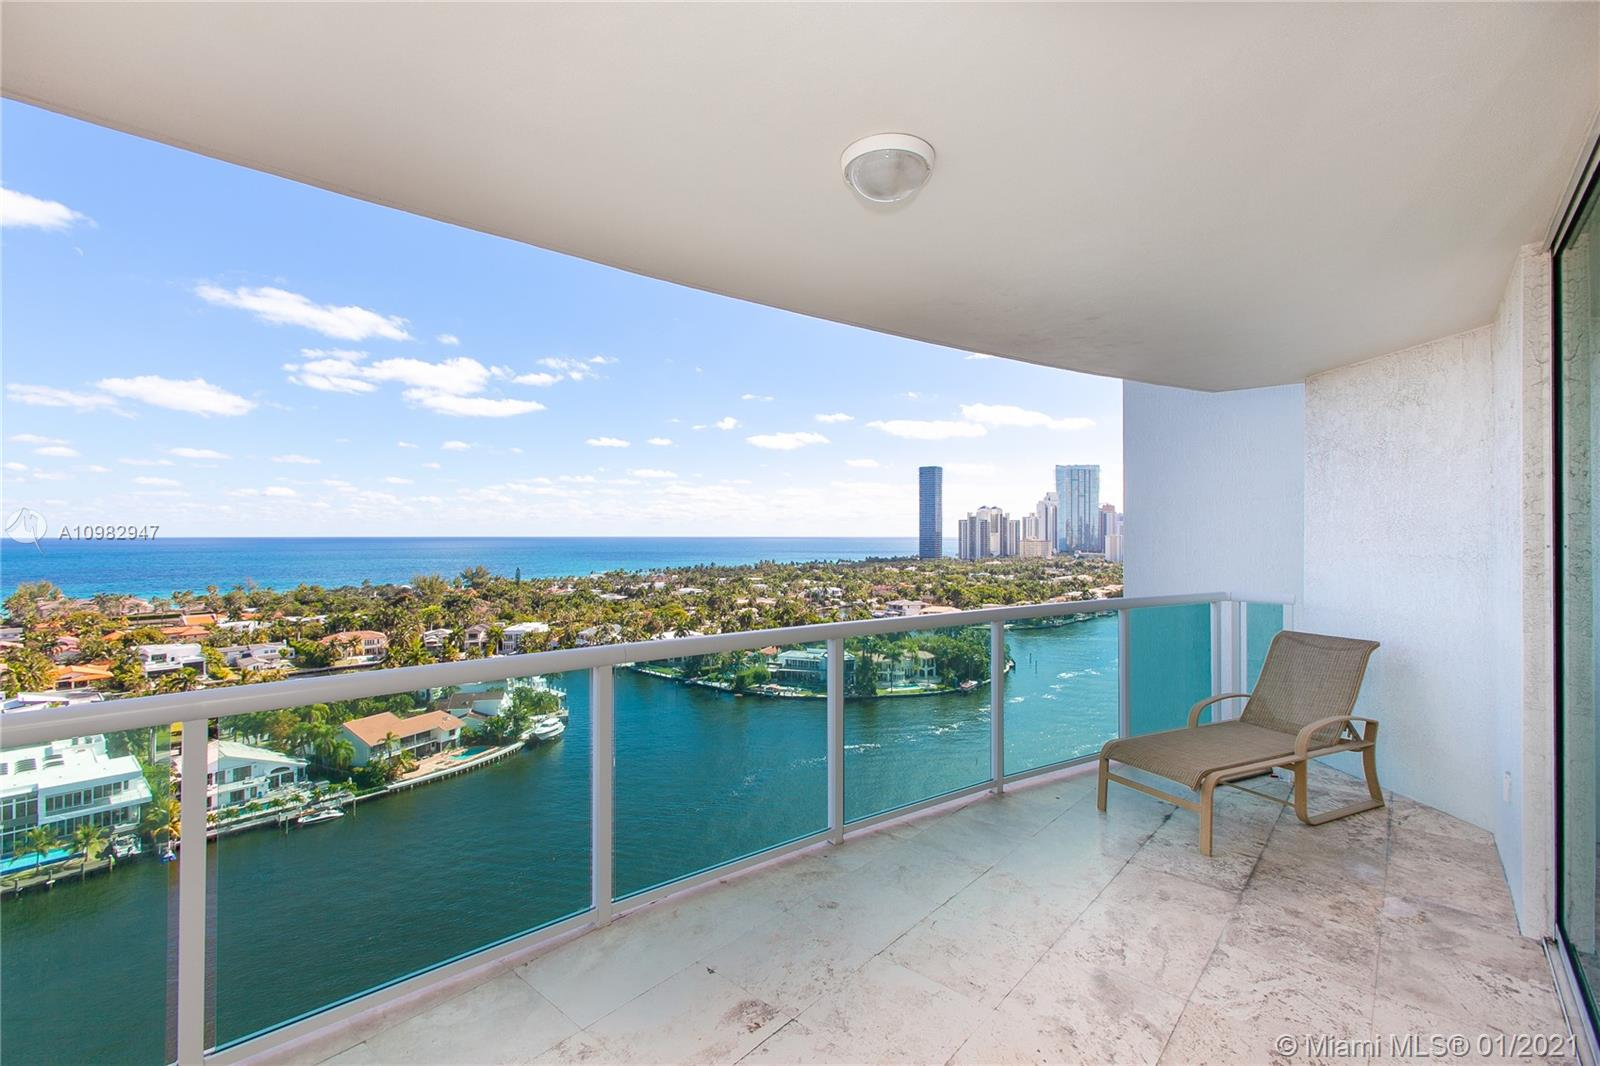 Hamptons South #1802 - 20201 E Country Club Dr #1802, Aventura, FL 33180